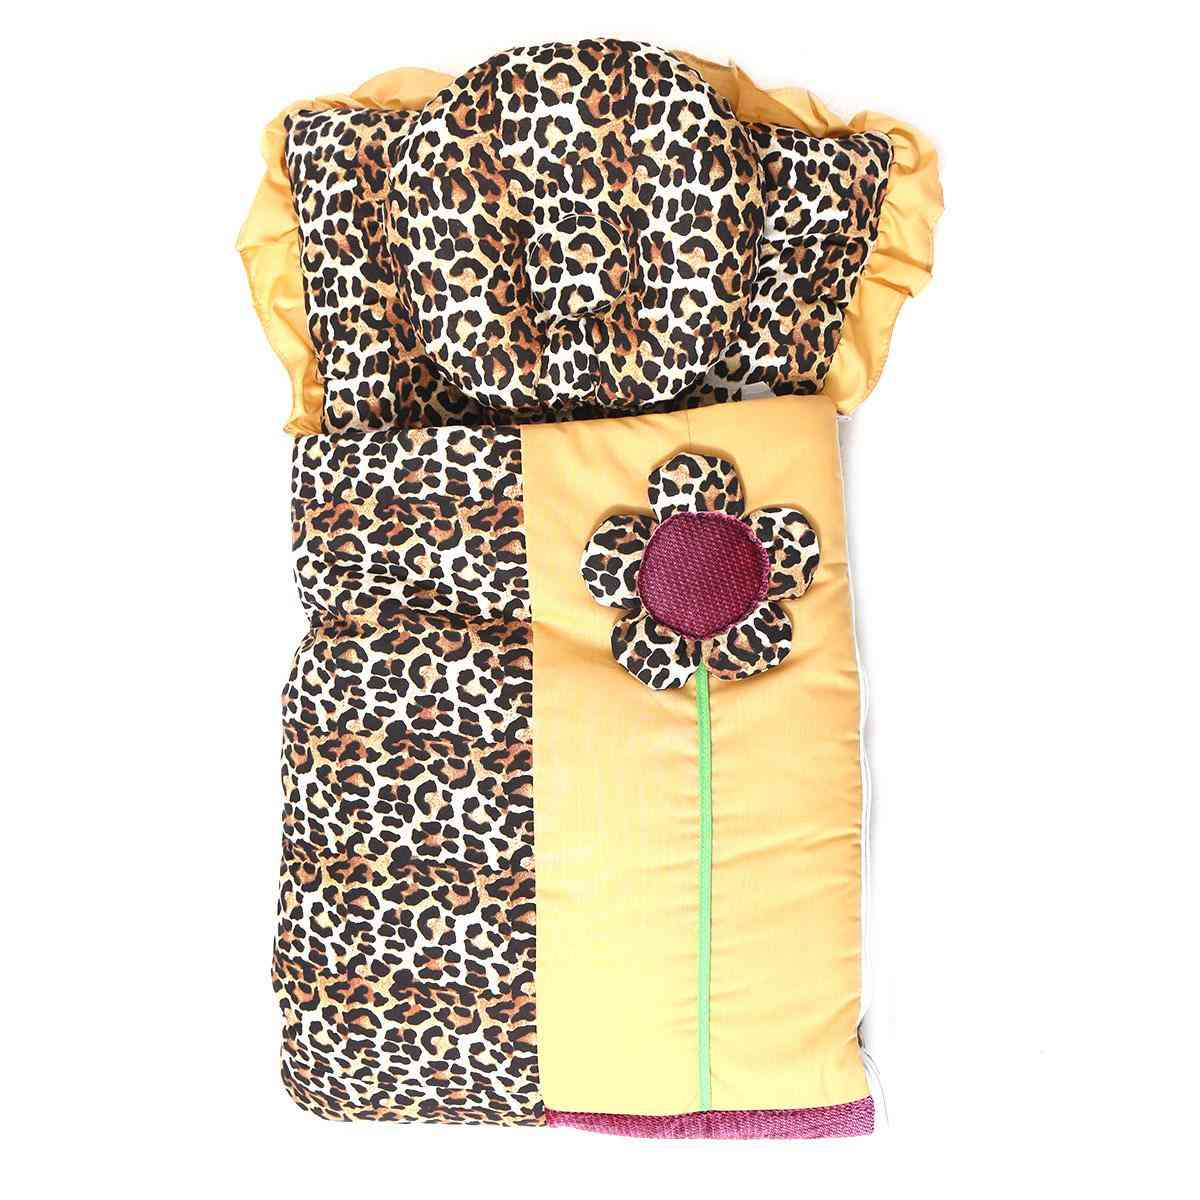 Pack of 2 Zipper Baby Carrying Bed Set with Pillow for Newborns (26x15 Inch)  Cheetah Print